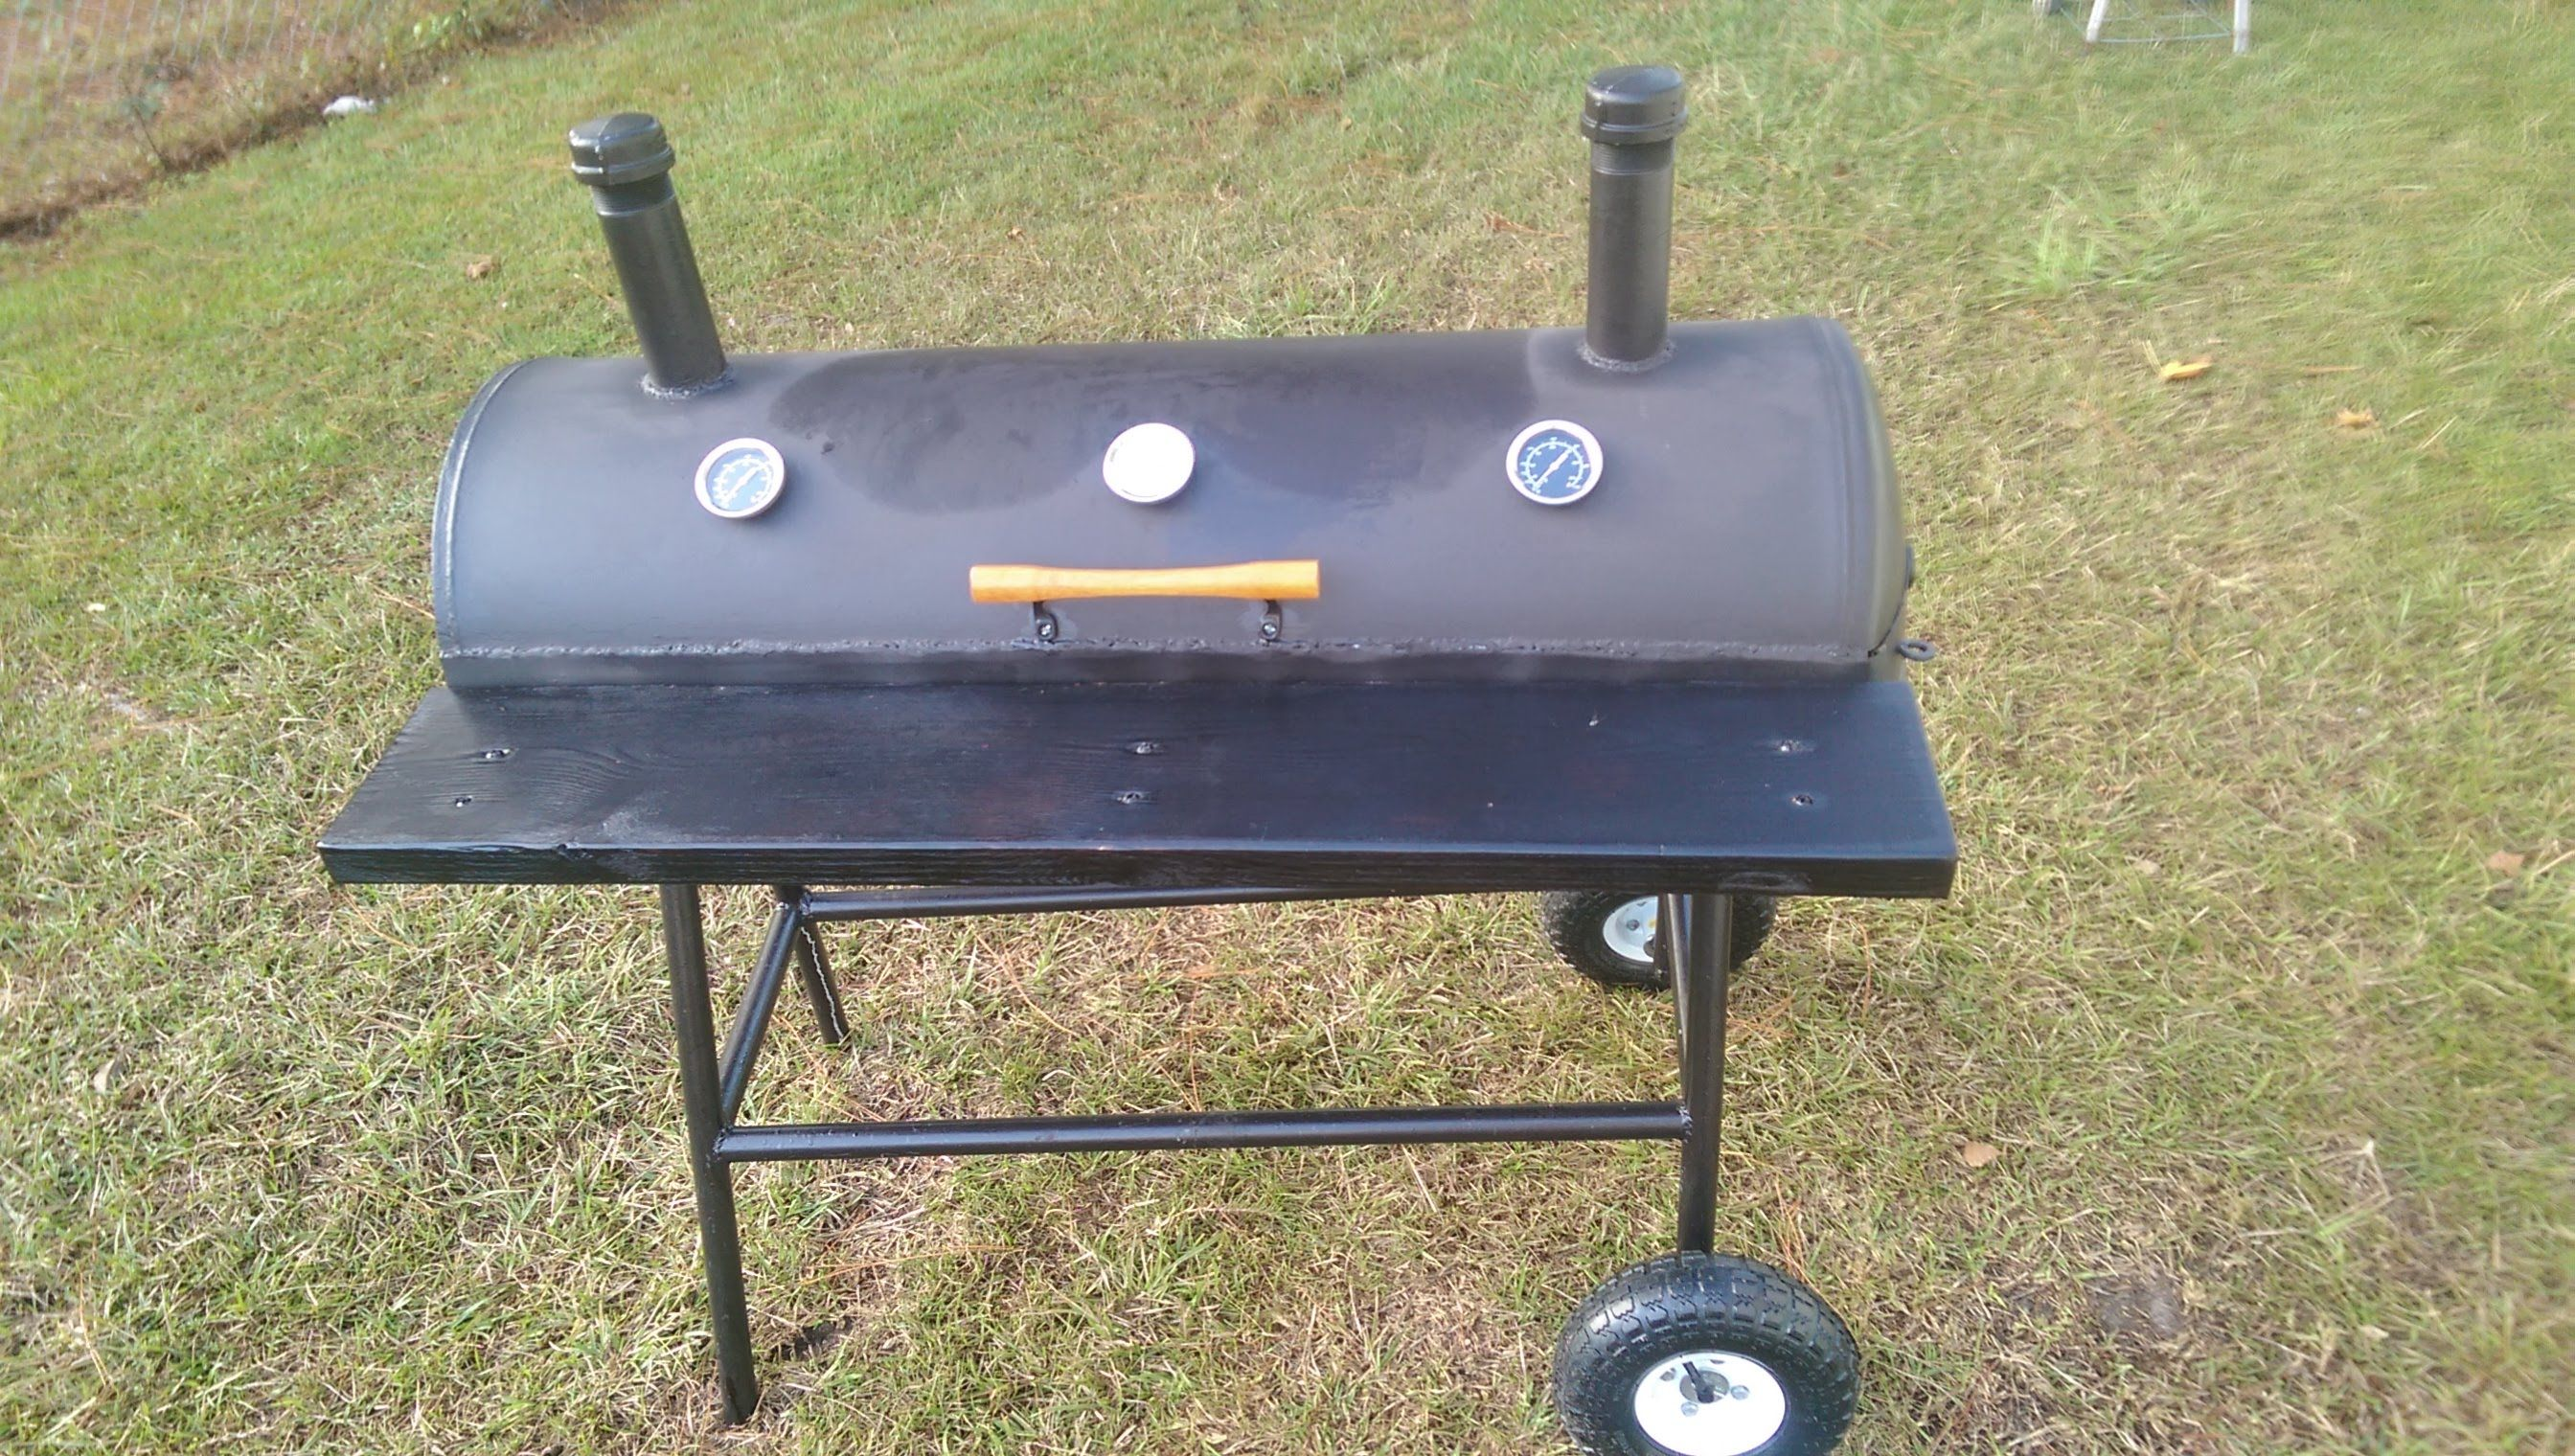 Building A Charcoal Grill From Hot Water Heater Hot Water Heater Charcoal Grill Best Charcoal Grill